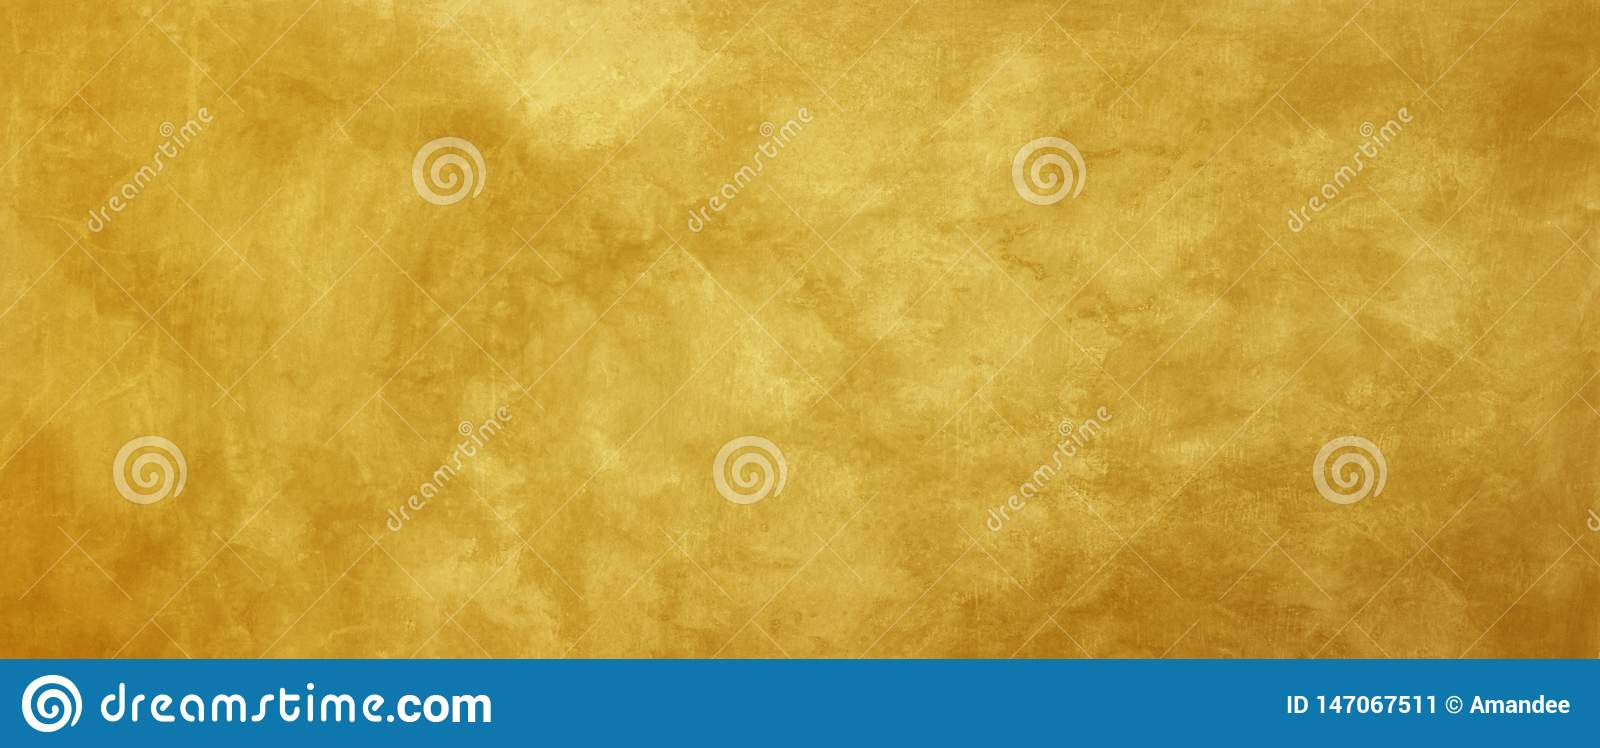 Old gold background with distressed vintage grunge texture design